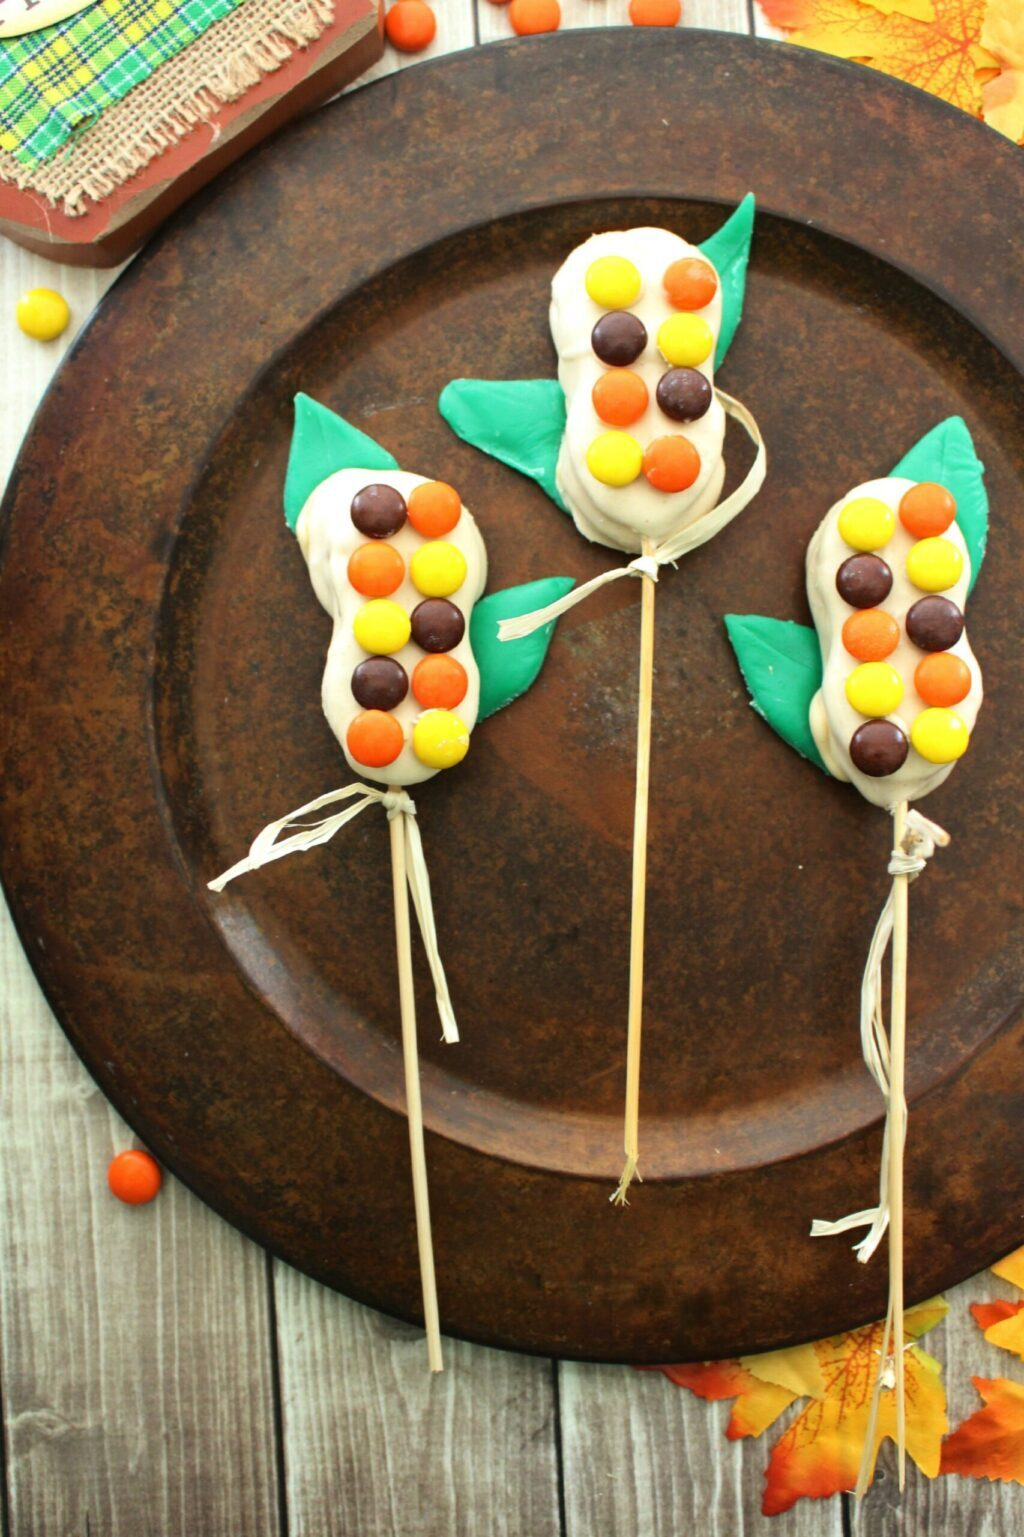 candy corn treats on brown plate